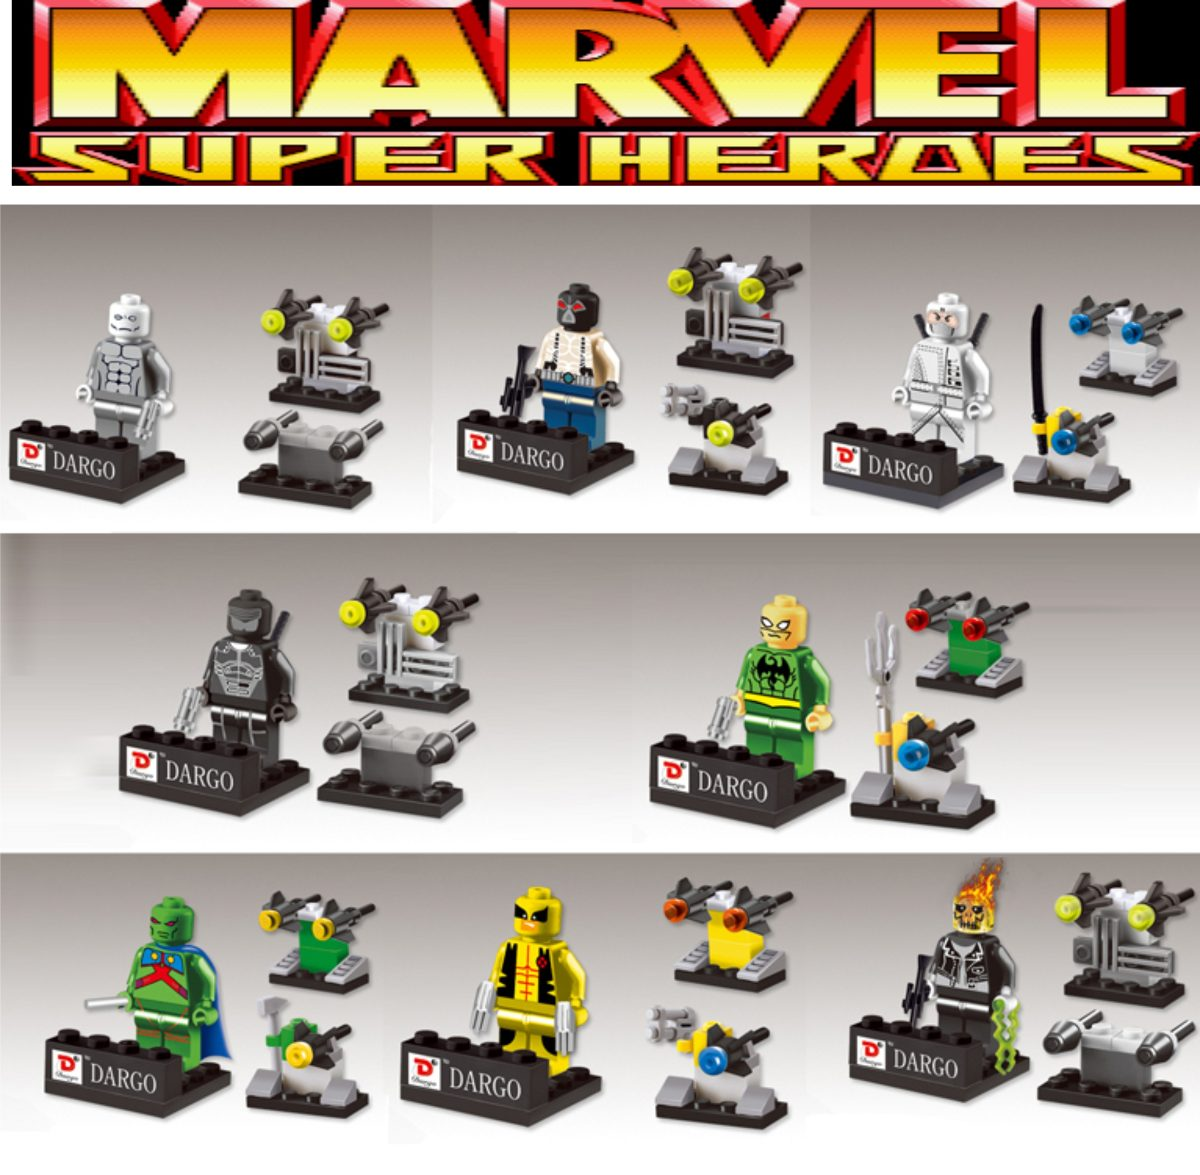 figuras compatibles con lego de marvel superheroes dargo en mercado libre. Black Bedroom Furniture Sets. Home Design Ideas